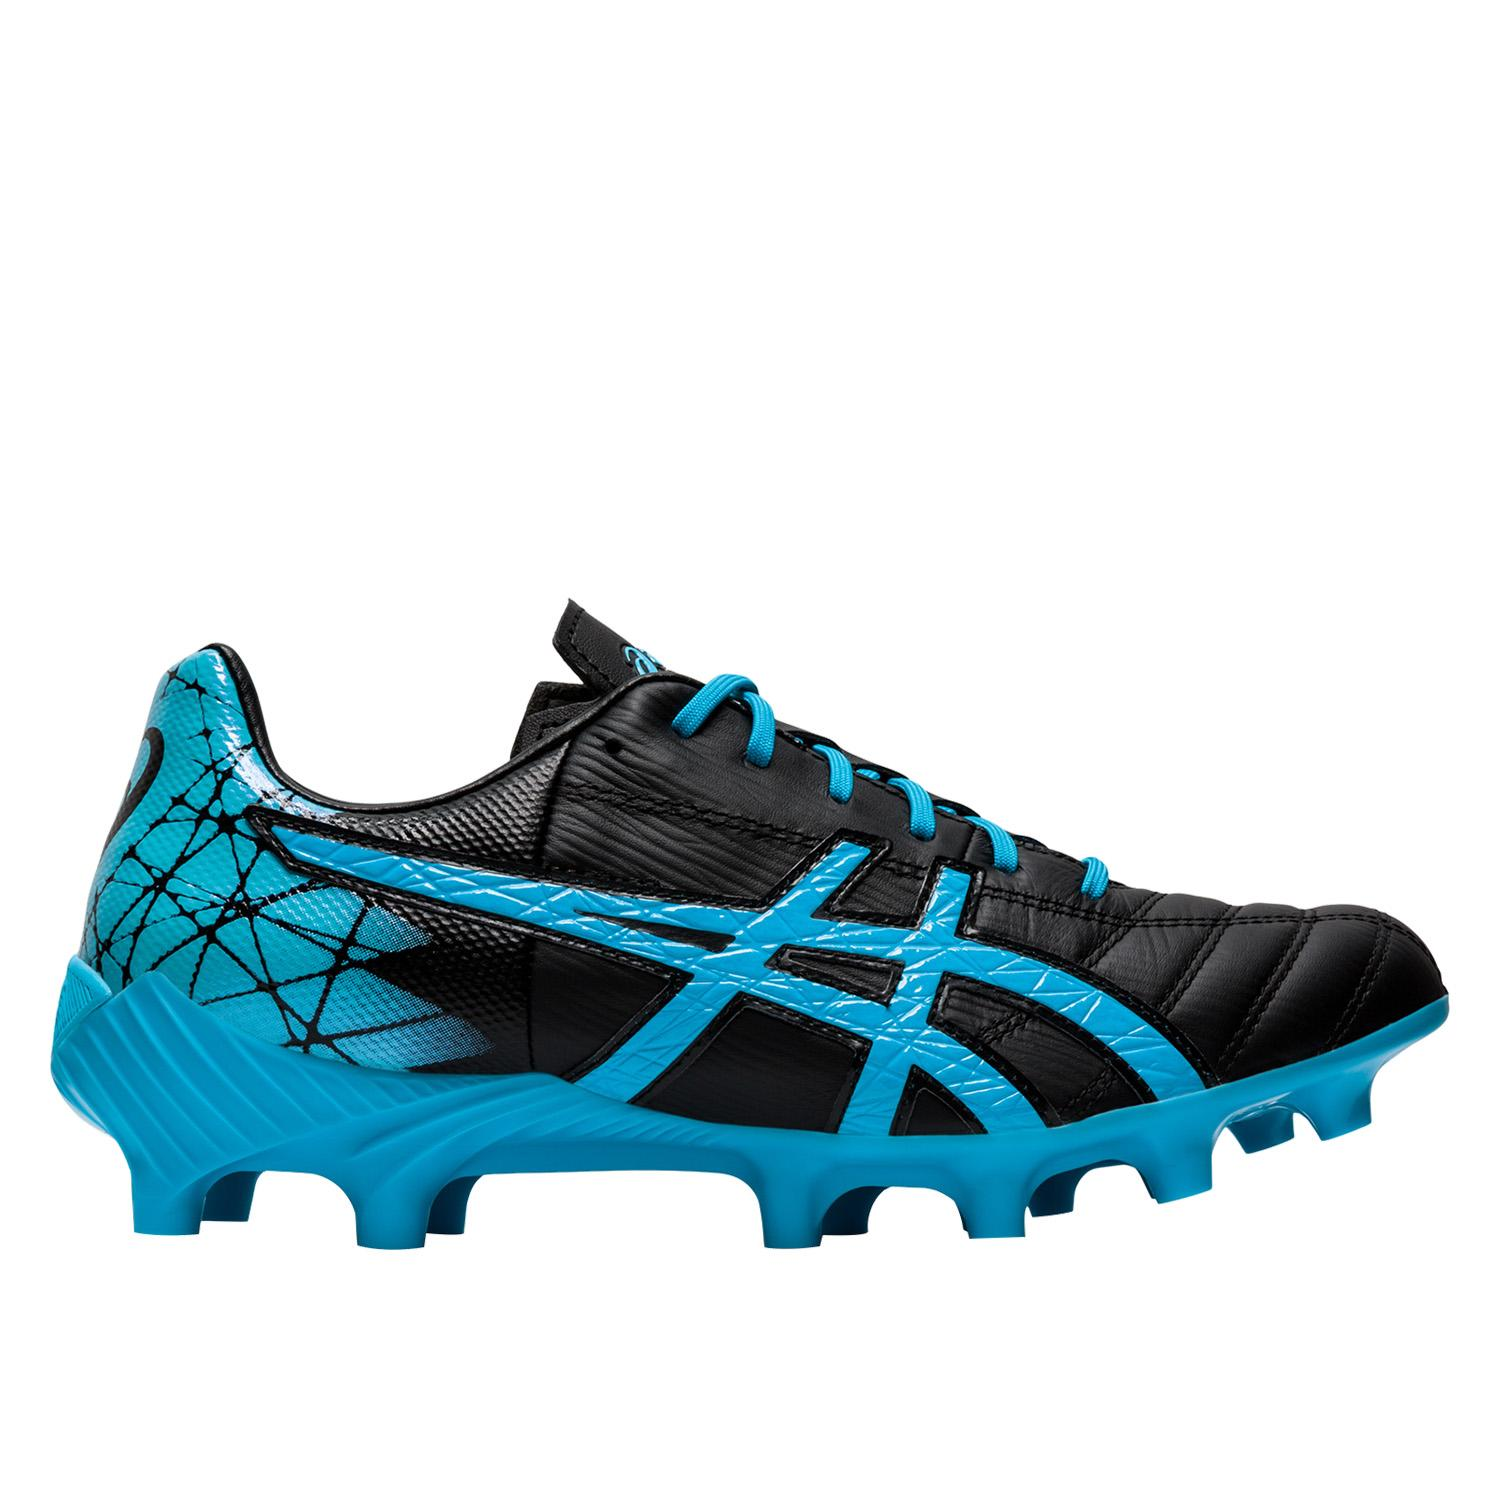 ASICS Lethal Tigreor IT FF Women's Football Boot